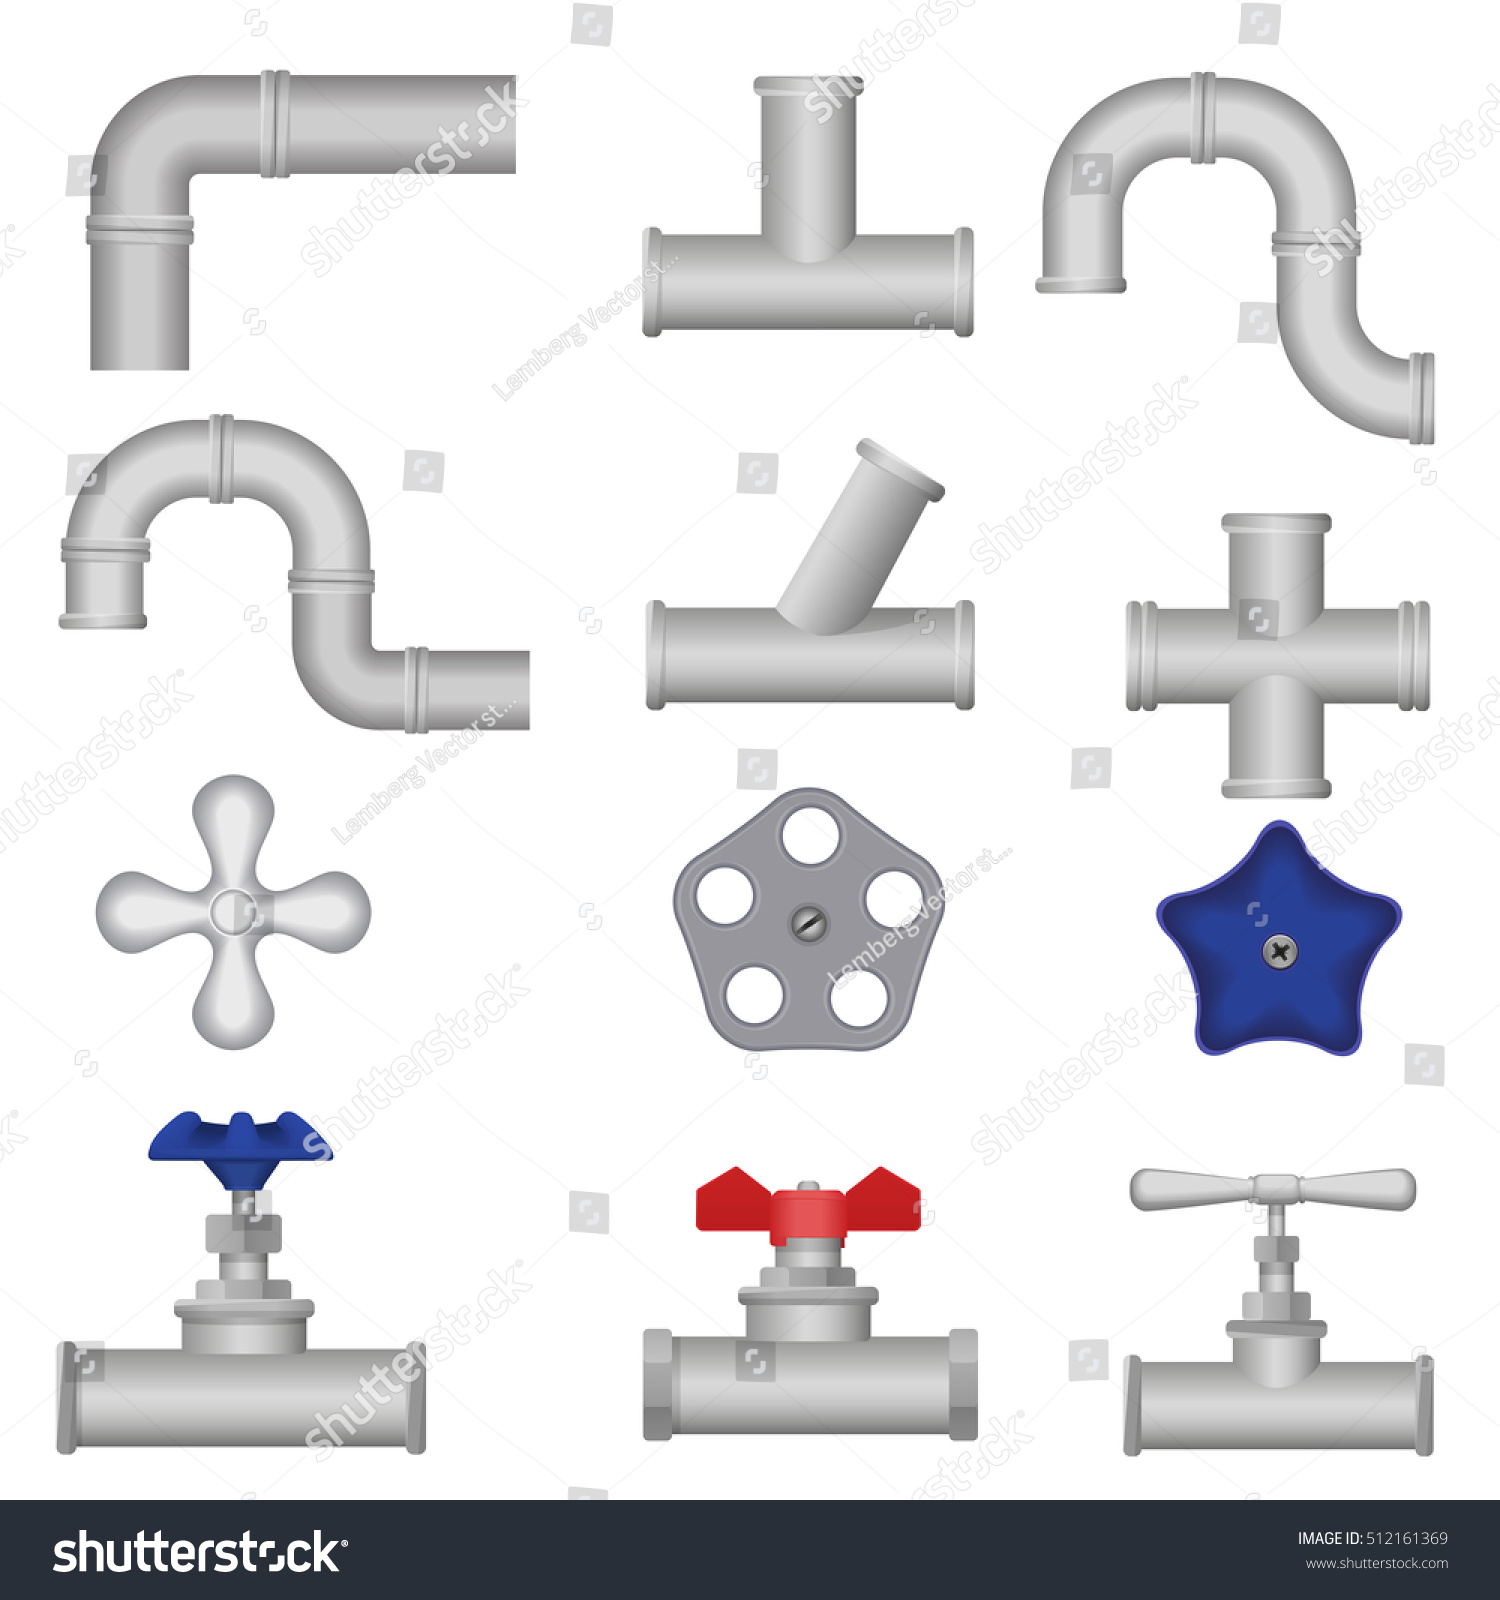 Uncategorized Plumbing Pieces construction plumbing pieces set pipes fittings stock vector of valve gate water